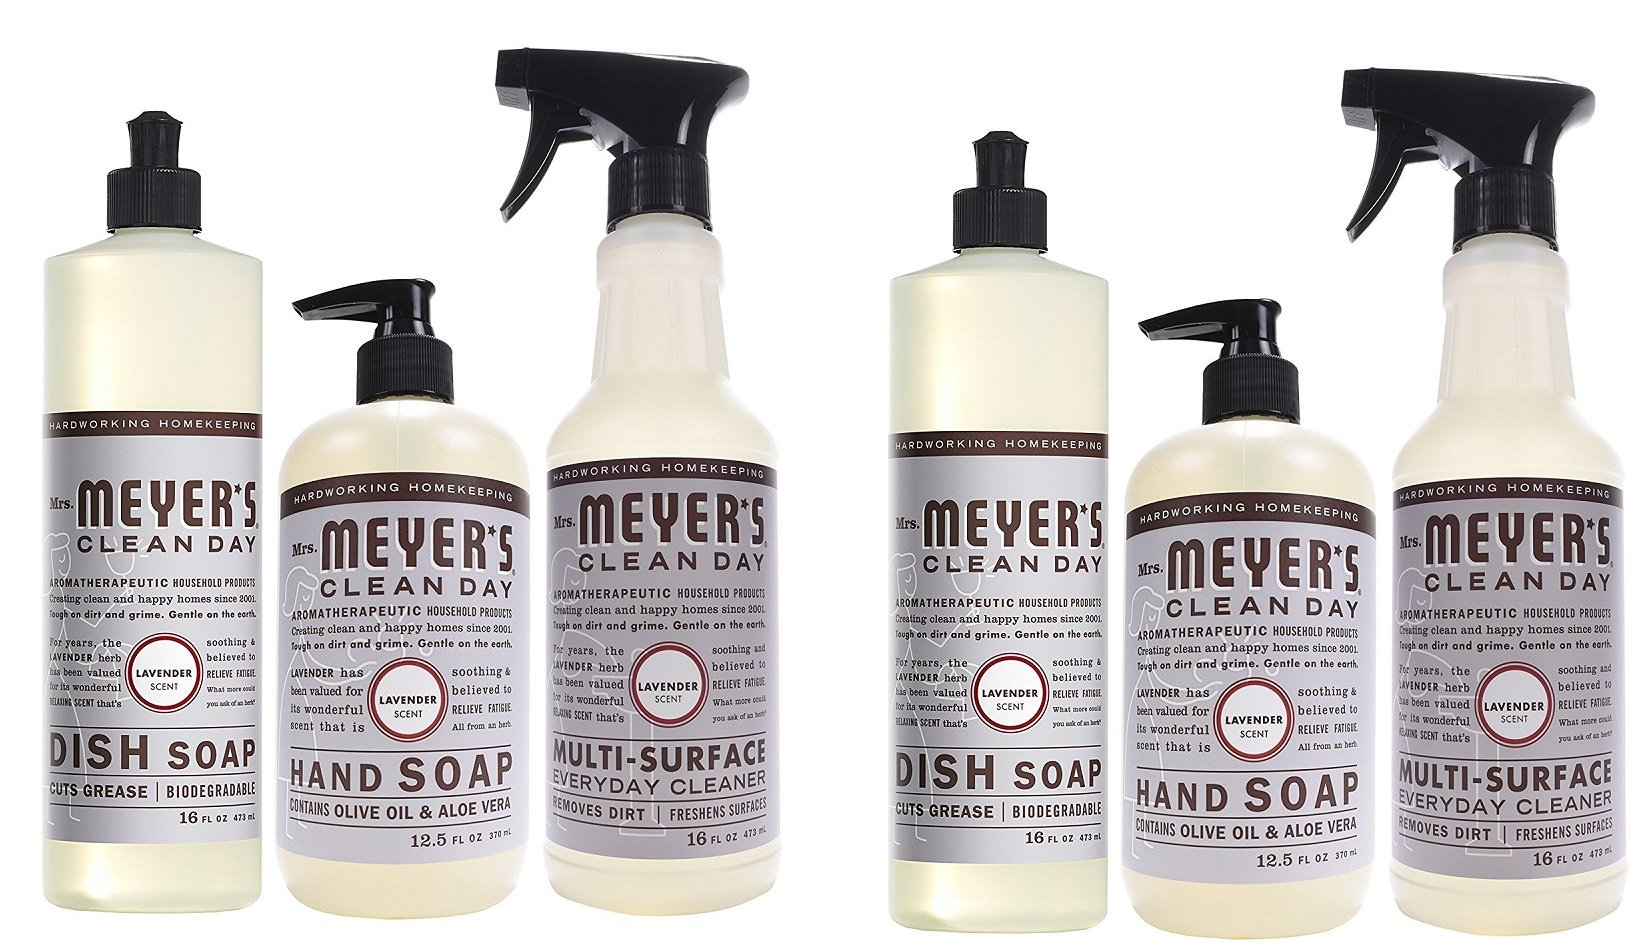 Mrs. Meyers Clean Day Kitchen Basics 6 Count Set, Lavender Scent, Dish Soap (16 fl oz), Hand Soap (12.5 fl oz), Multi-Surface Everyday Cleaner (16 fl oz) by Mrs. Meyer's Clean Day